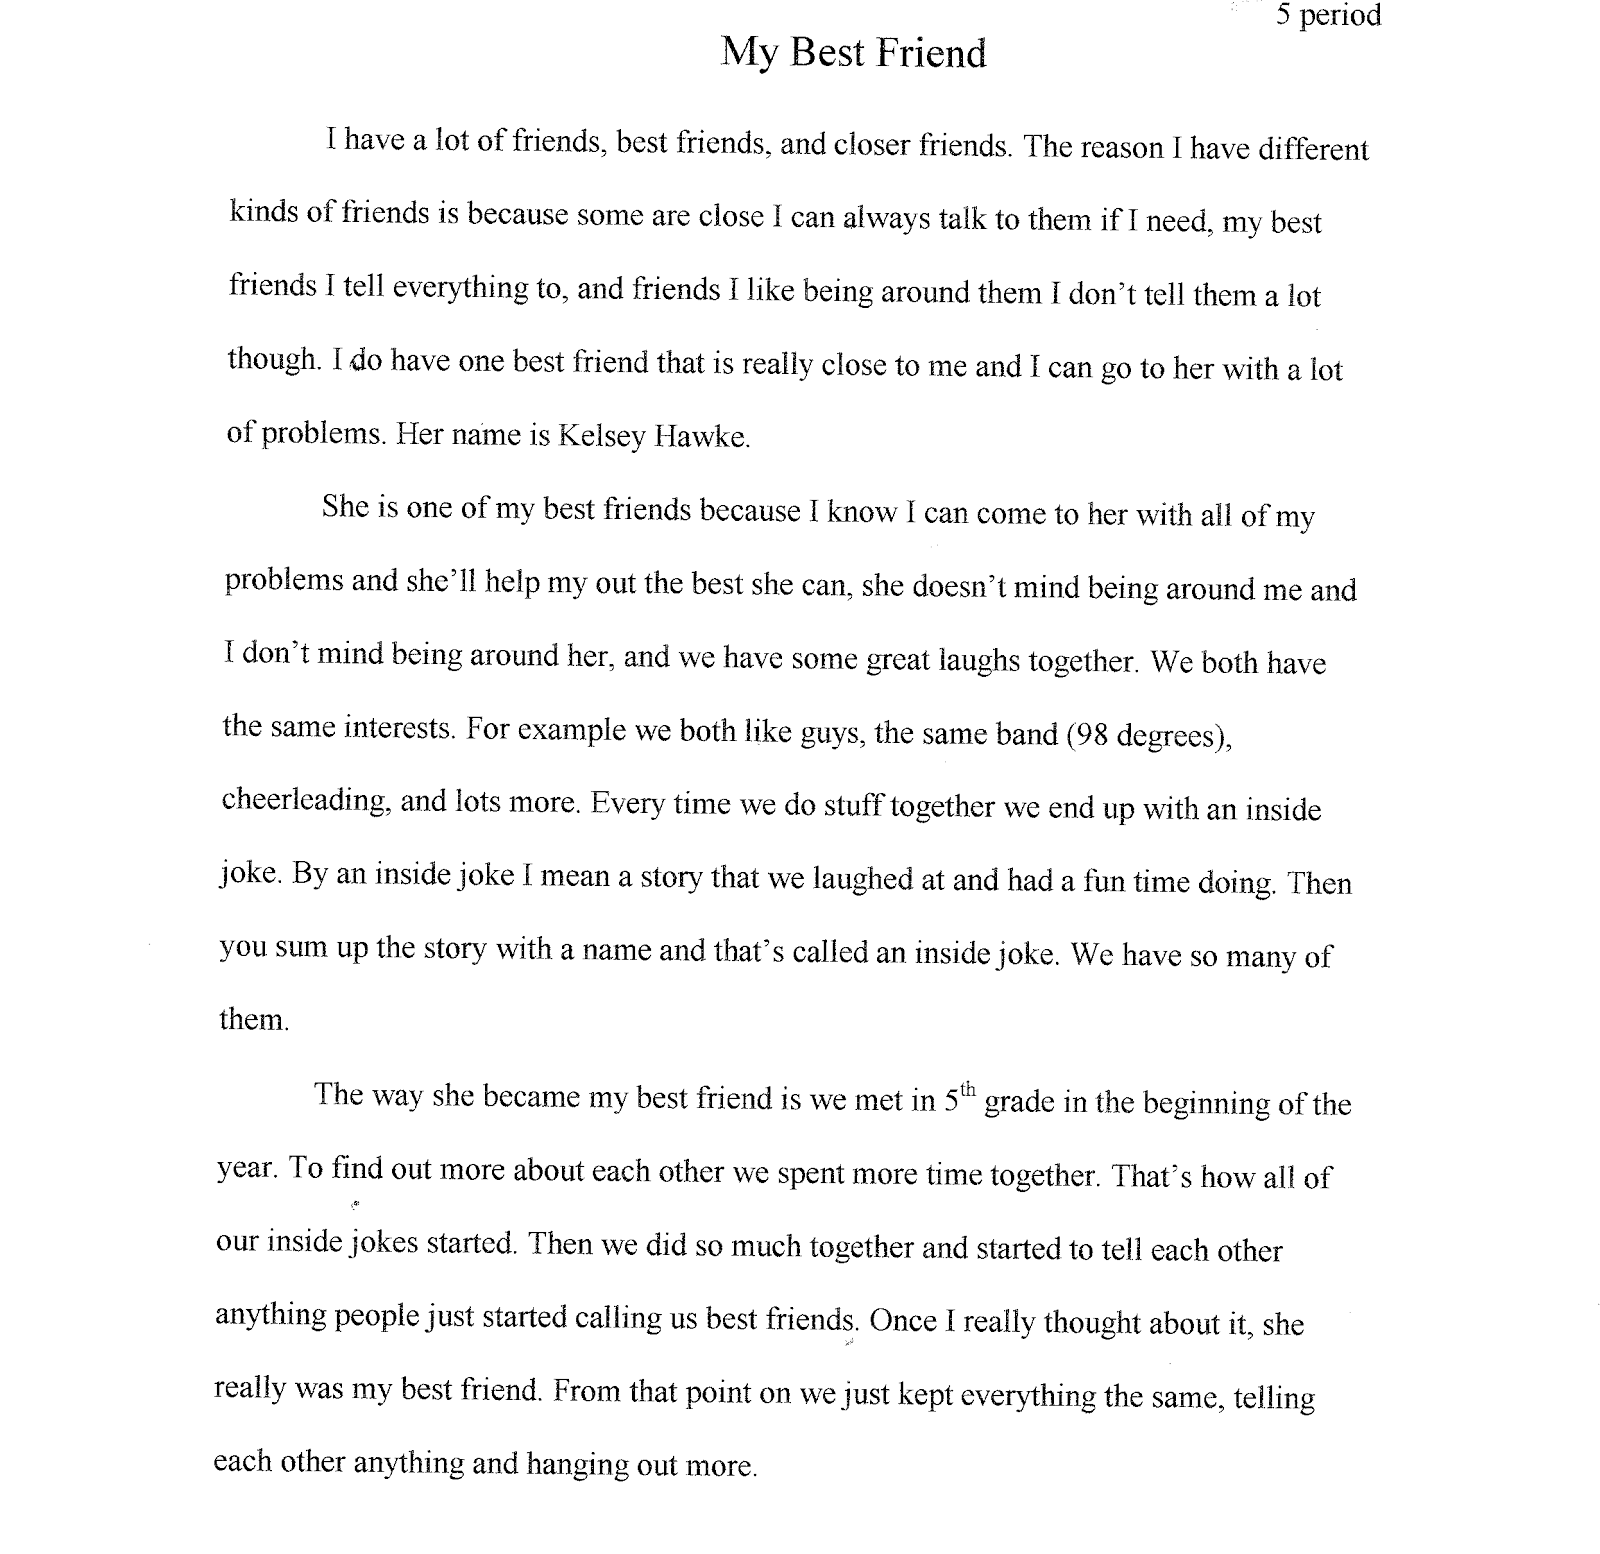 012 Memoir Essay Example 6th Bestfriend Post1 Wonderful Definition Scholastic Writing Contests 2017 Full